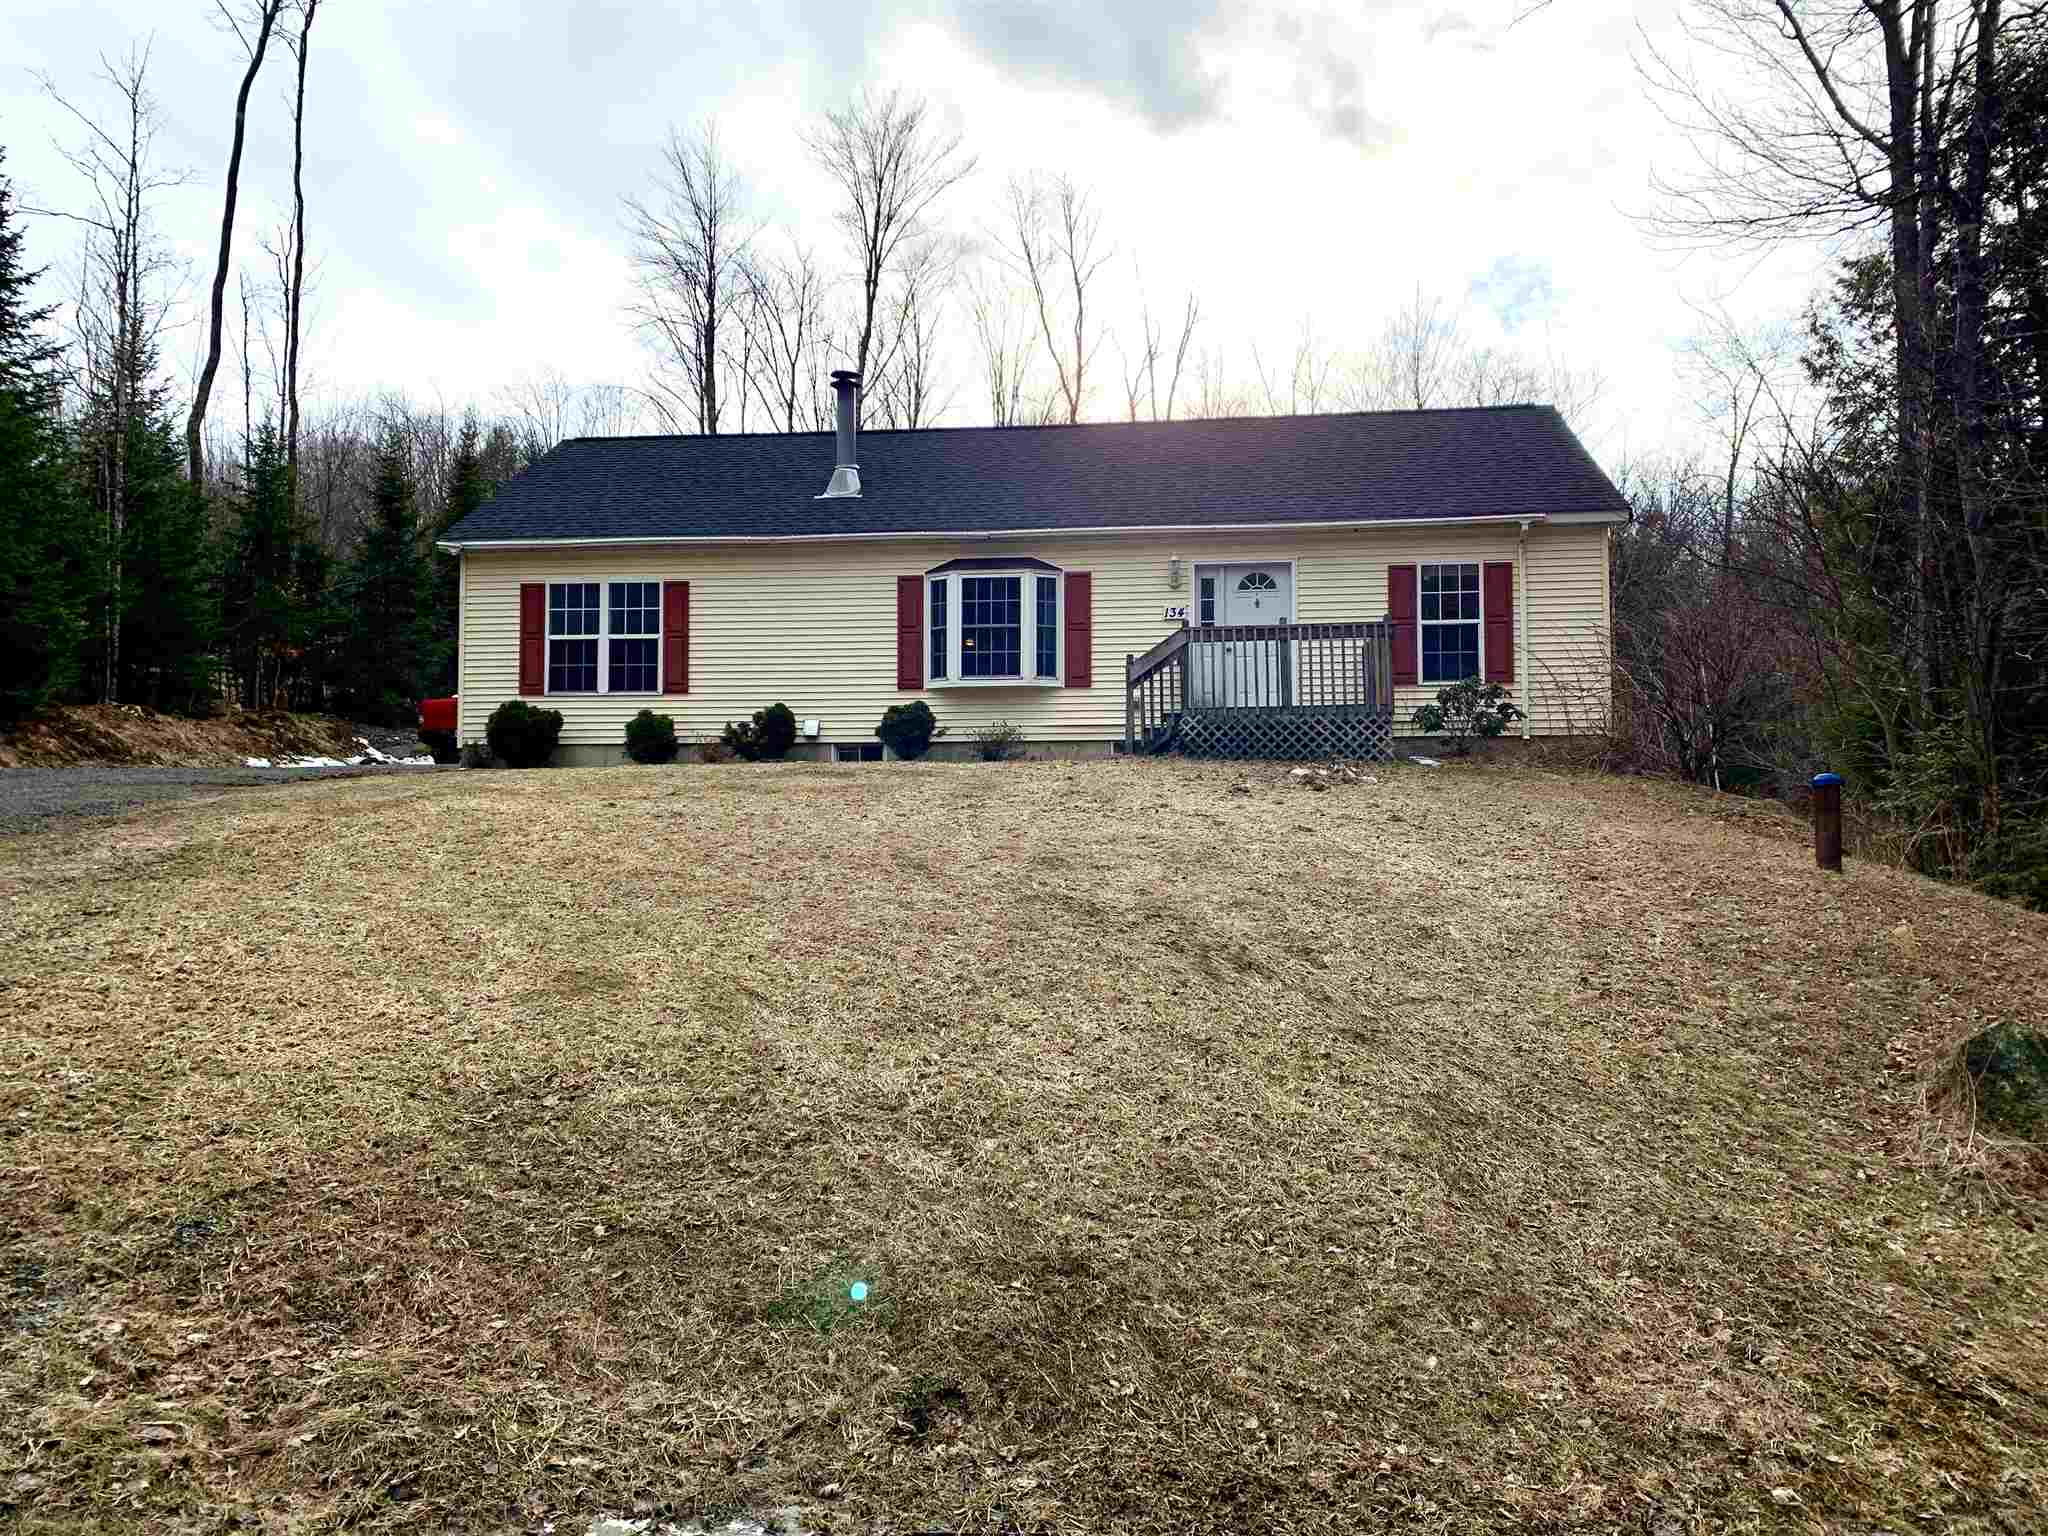 MLS 4798348: 134 Woodland Heights, Grantham NH